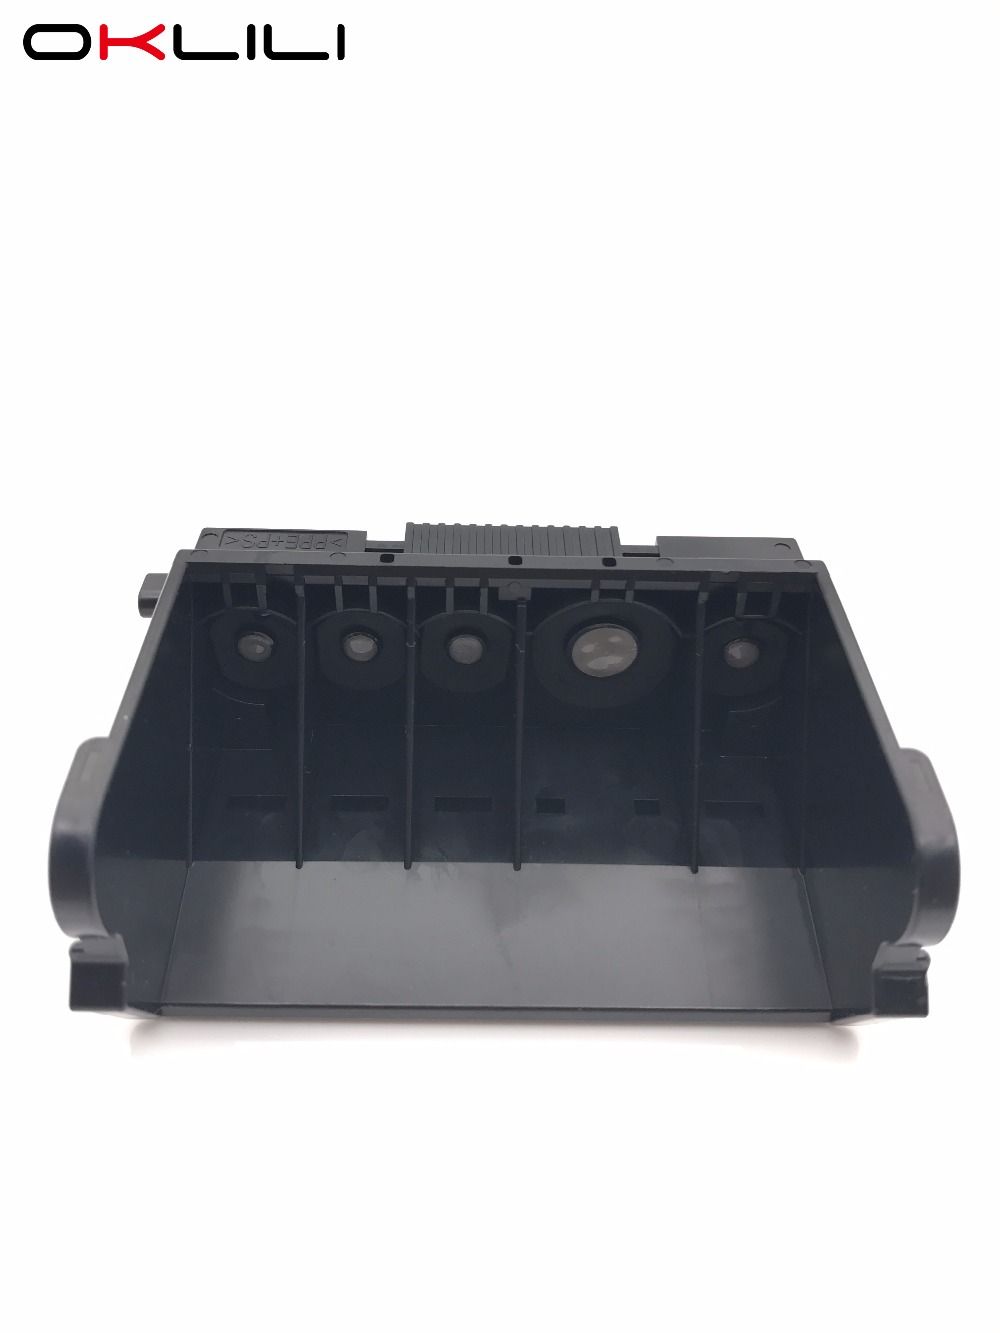 OKLILI ASLI QY6-0059 QY6-0059-000 Printhead Print Head Printer Head untuk Canon iP4200 MP500 MP530